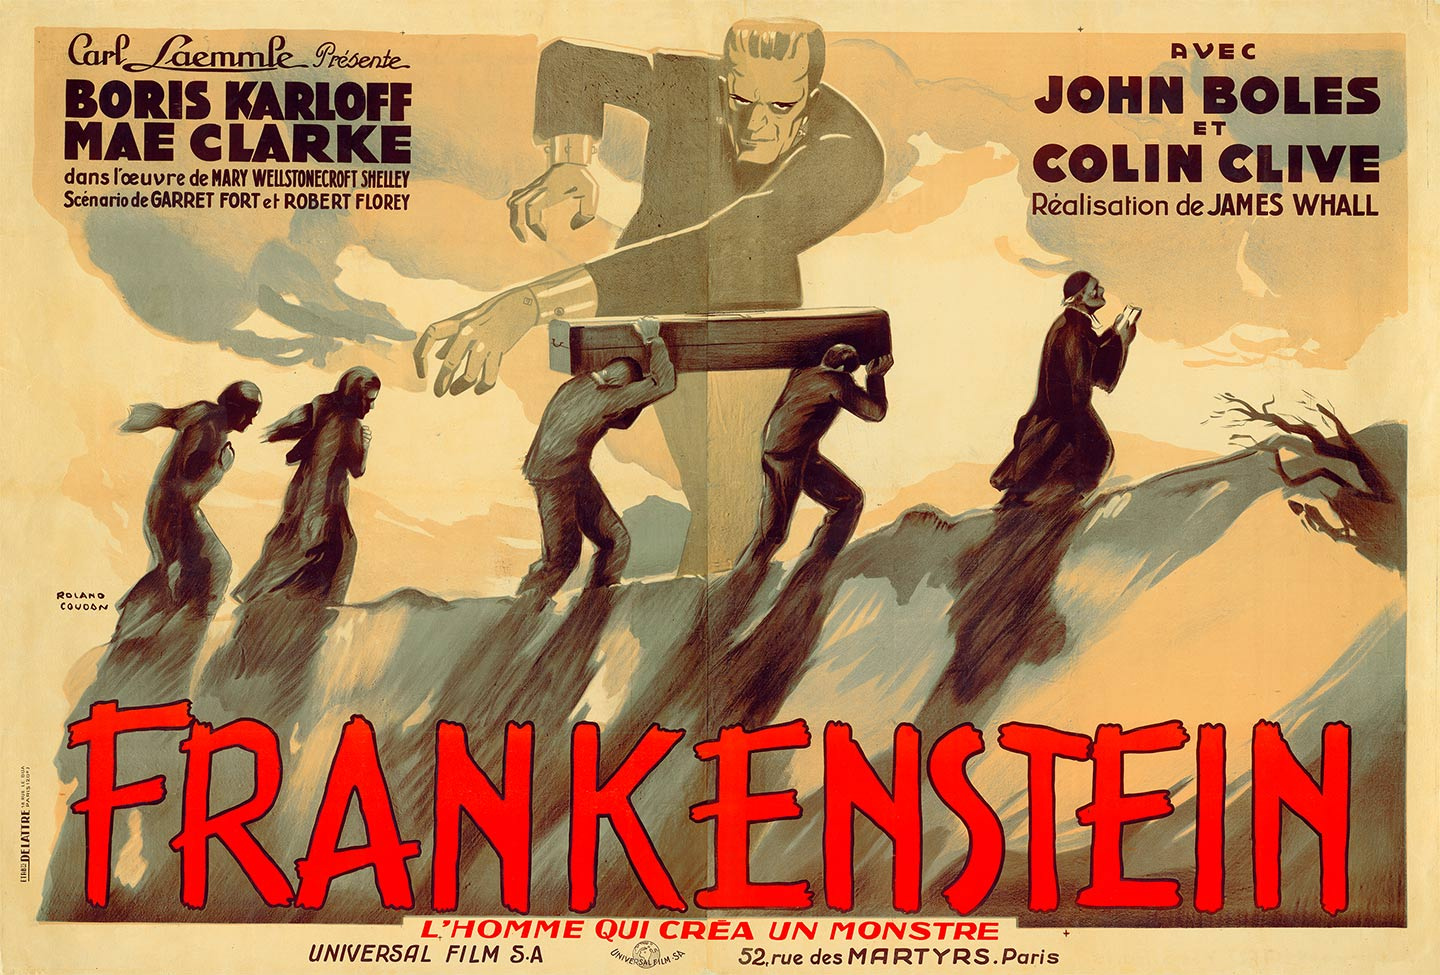 Classic Horror and Sci-Fi Art from the Kirk Hamme Collec on